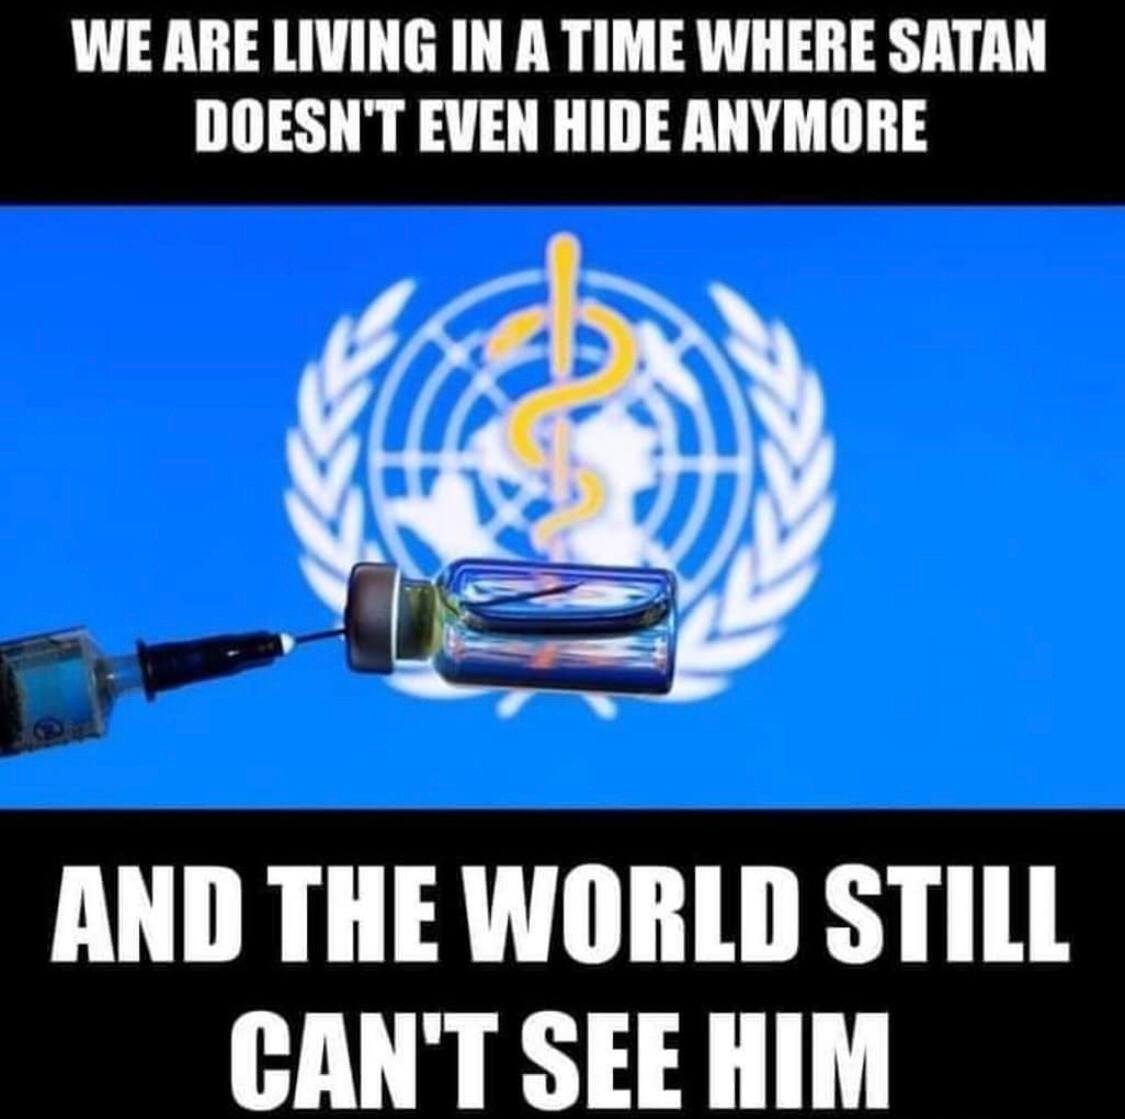 We Are Living In A Time Where Satan Doesn't Even Hide Anymore, AND THE WORLD STILL CAN'T SEE HIM